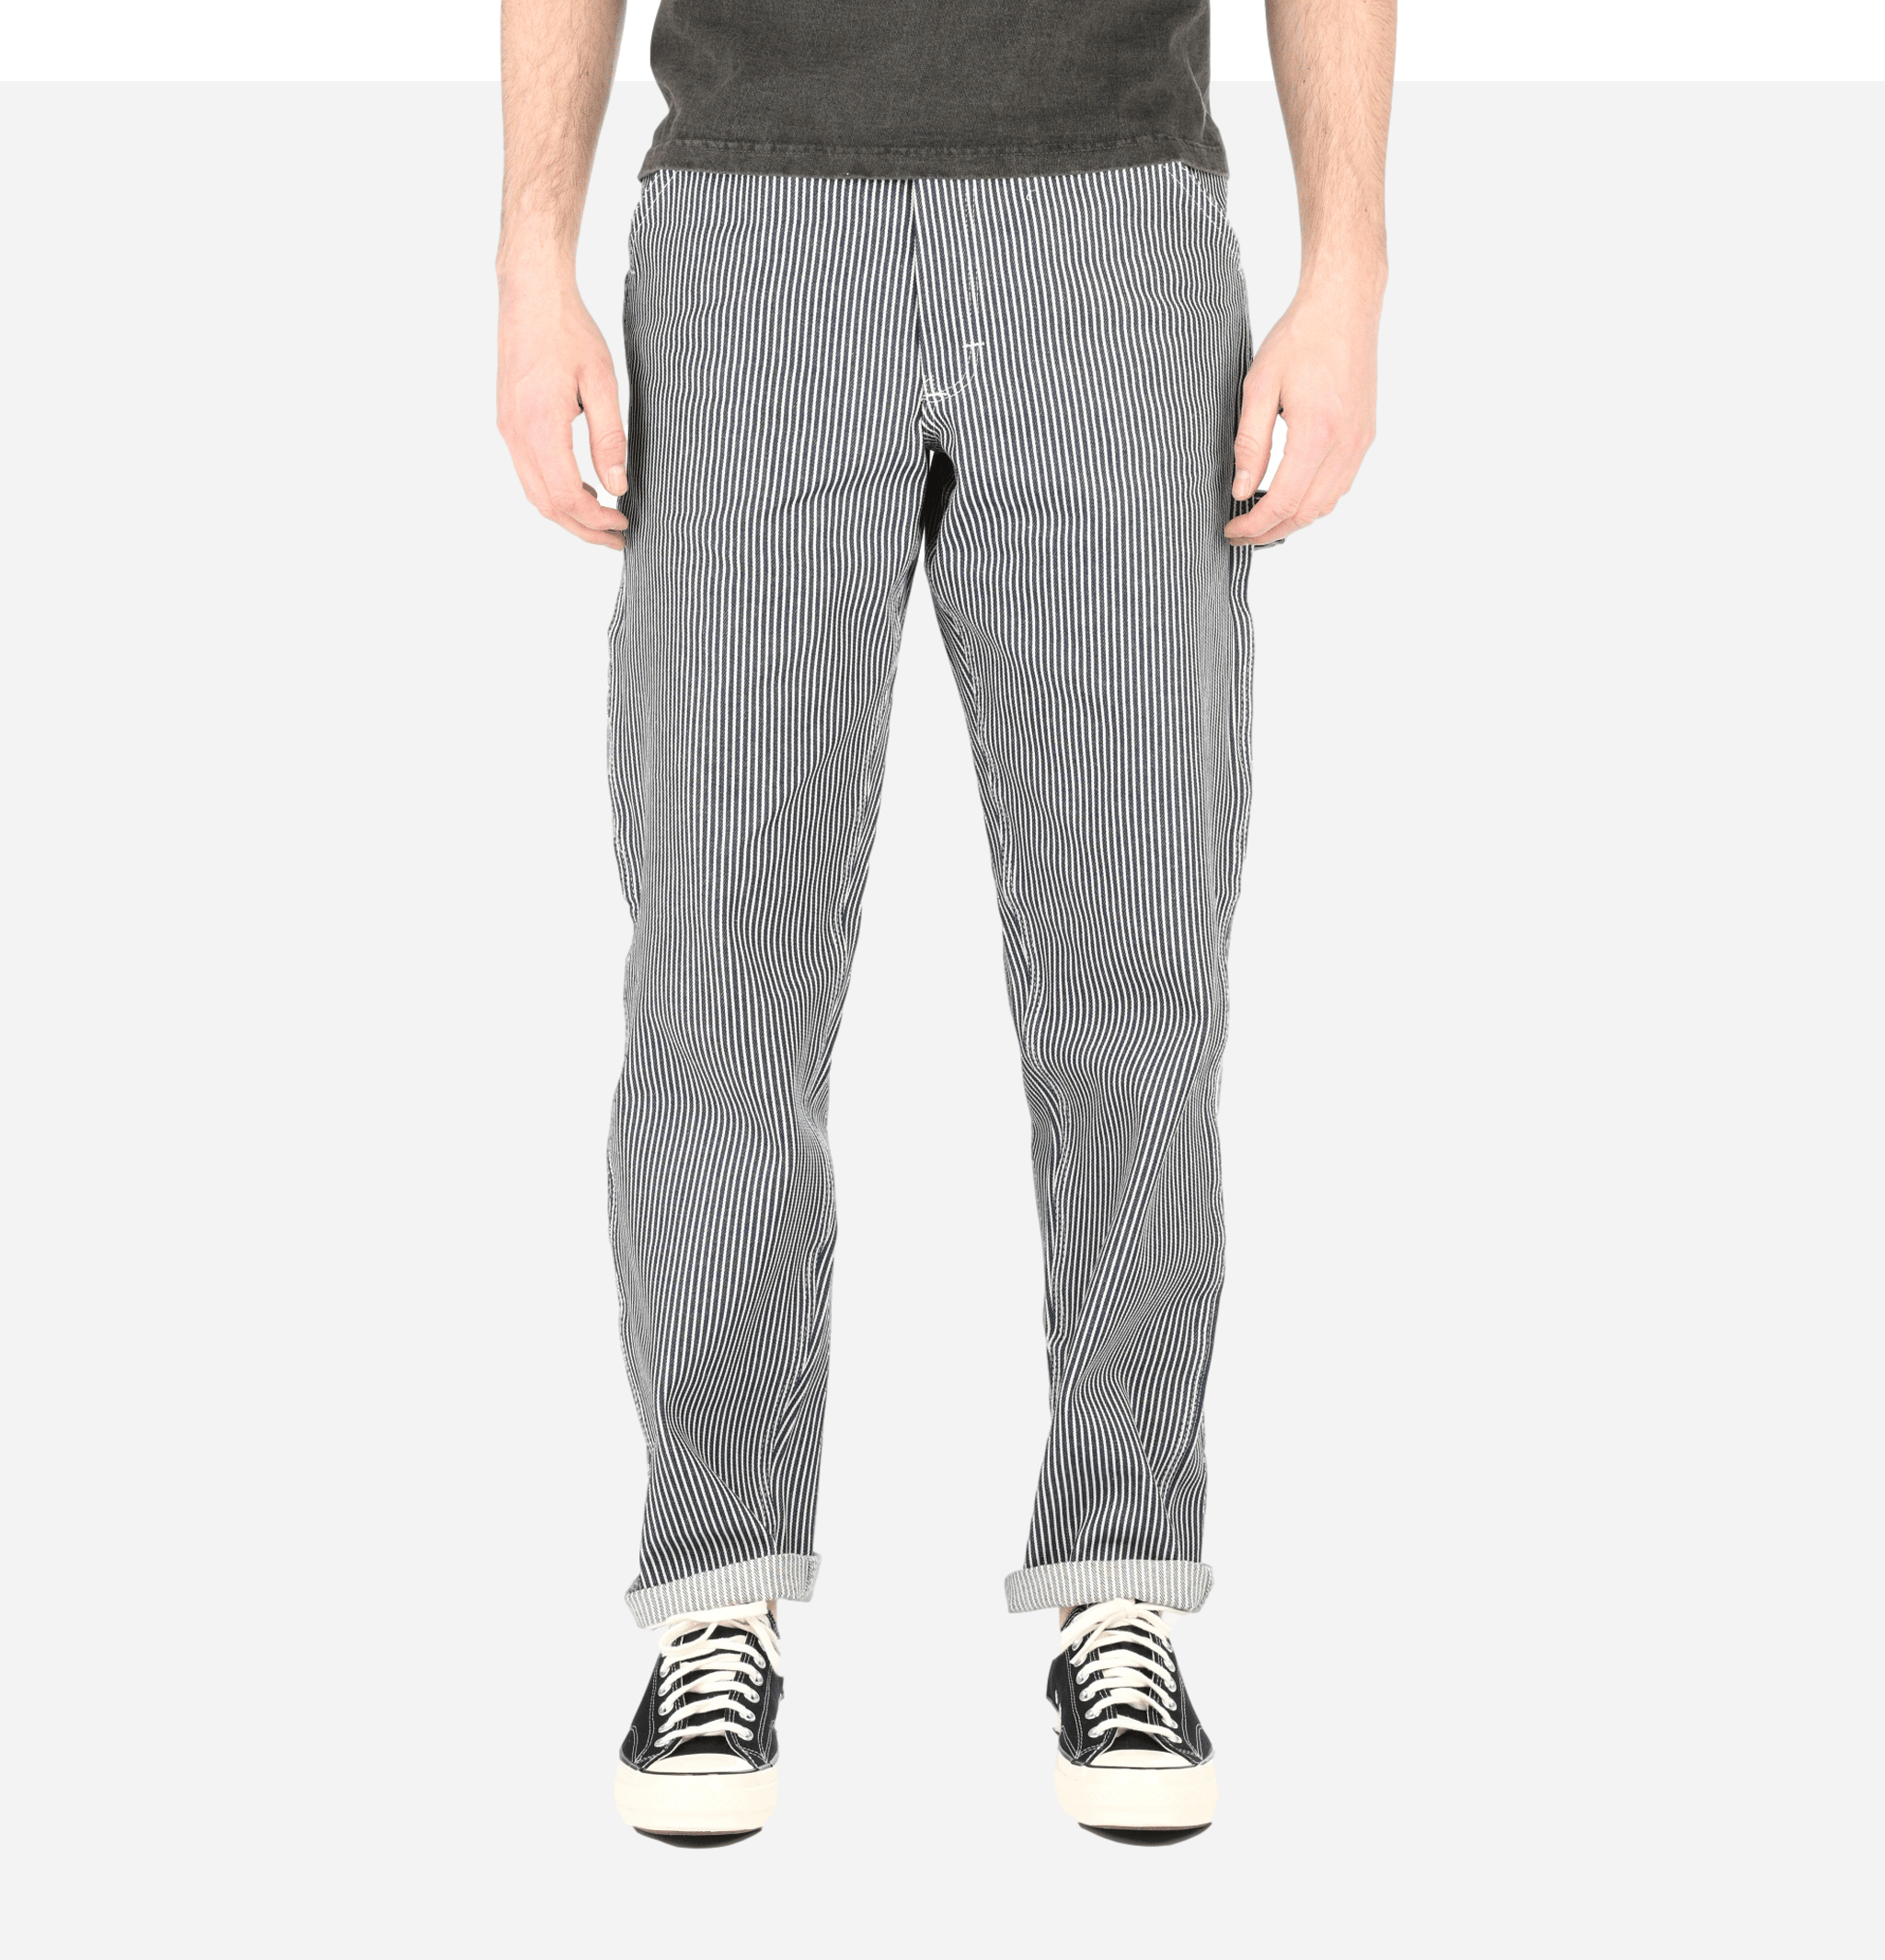 Painter Pant 80 Hickory